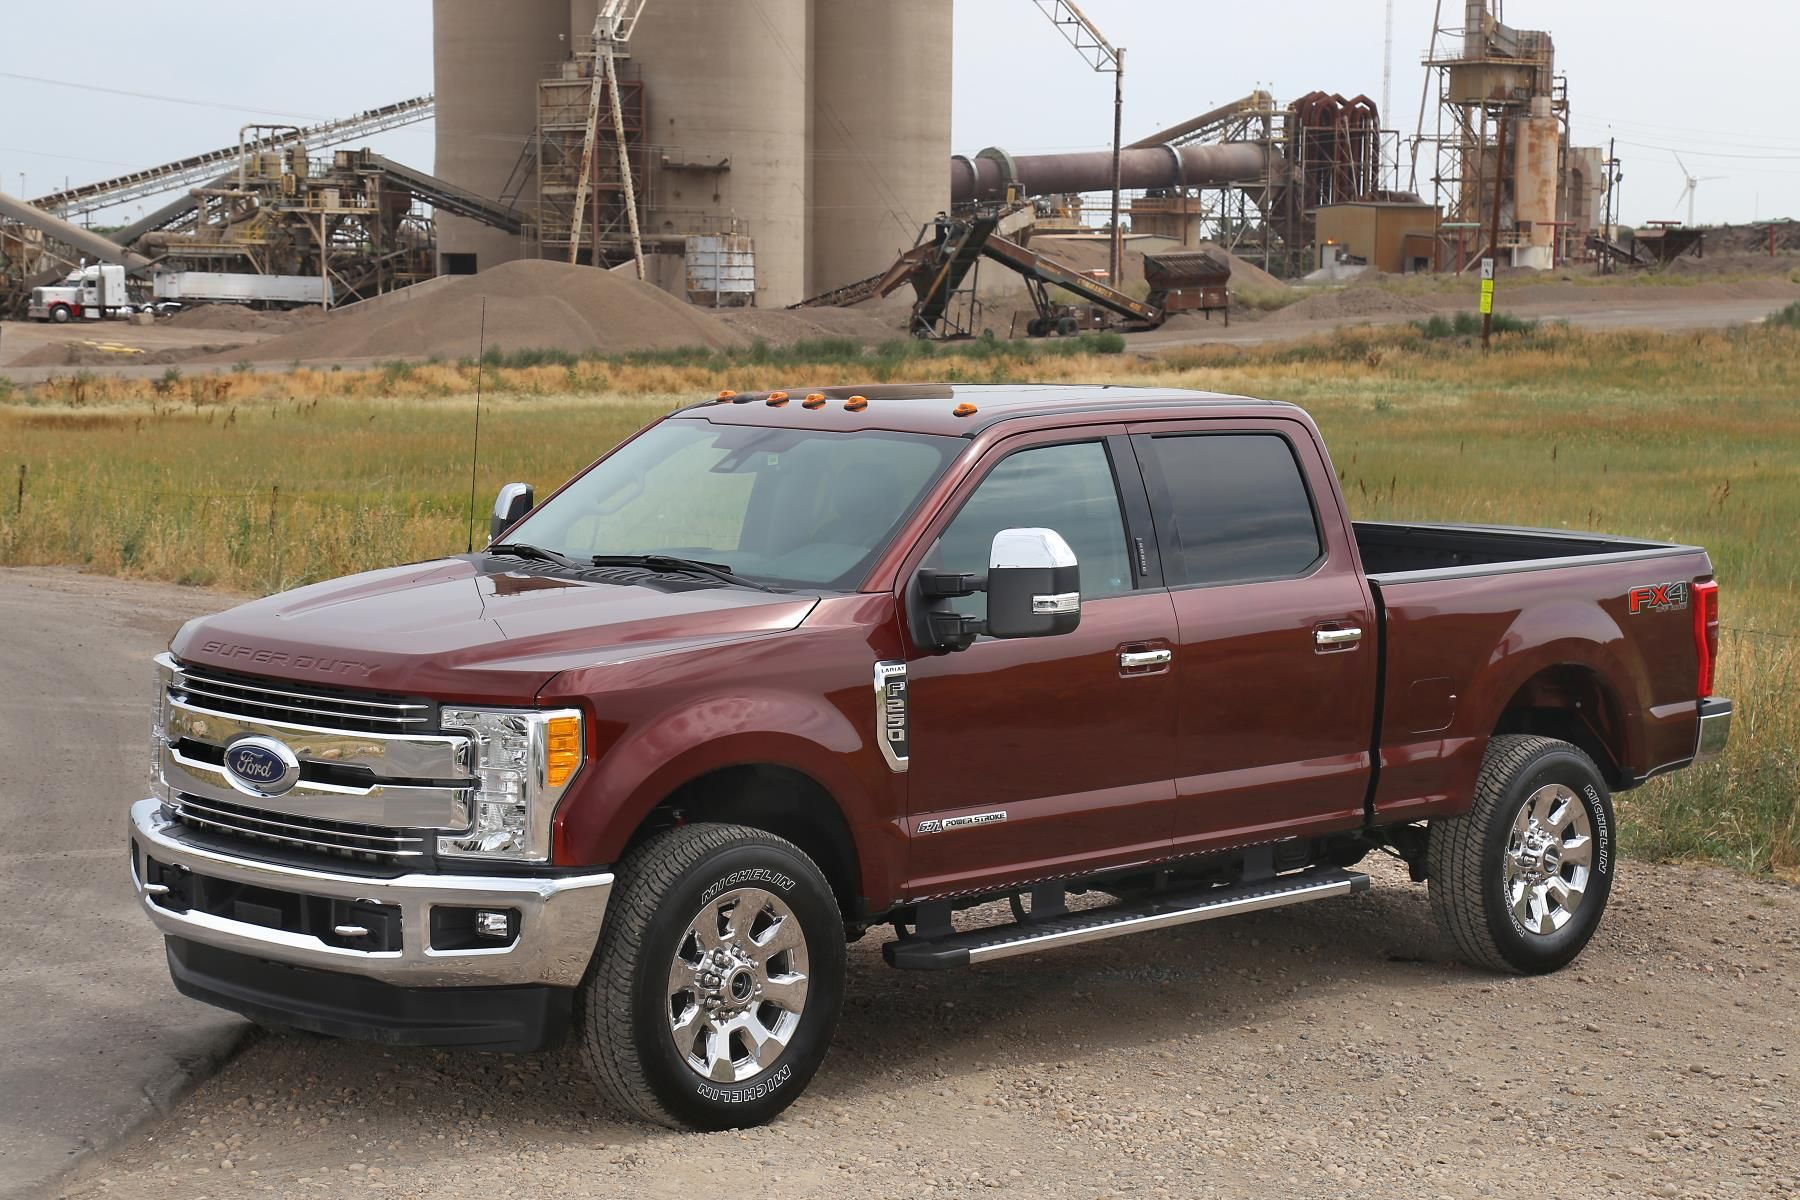 Ford comes top in heavy duty pick up tests